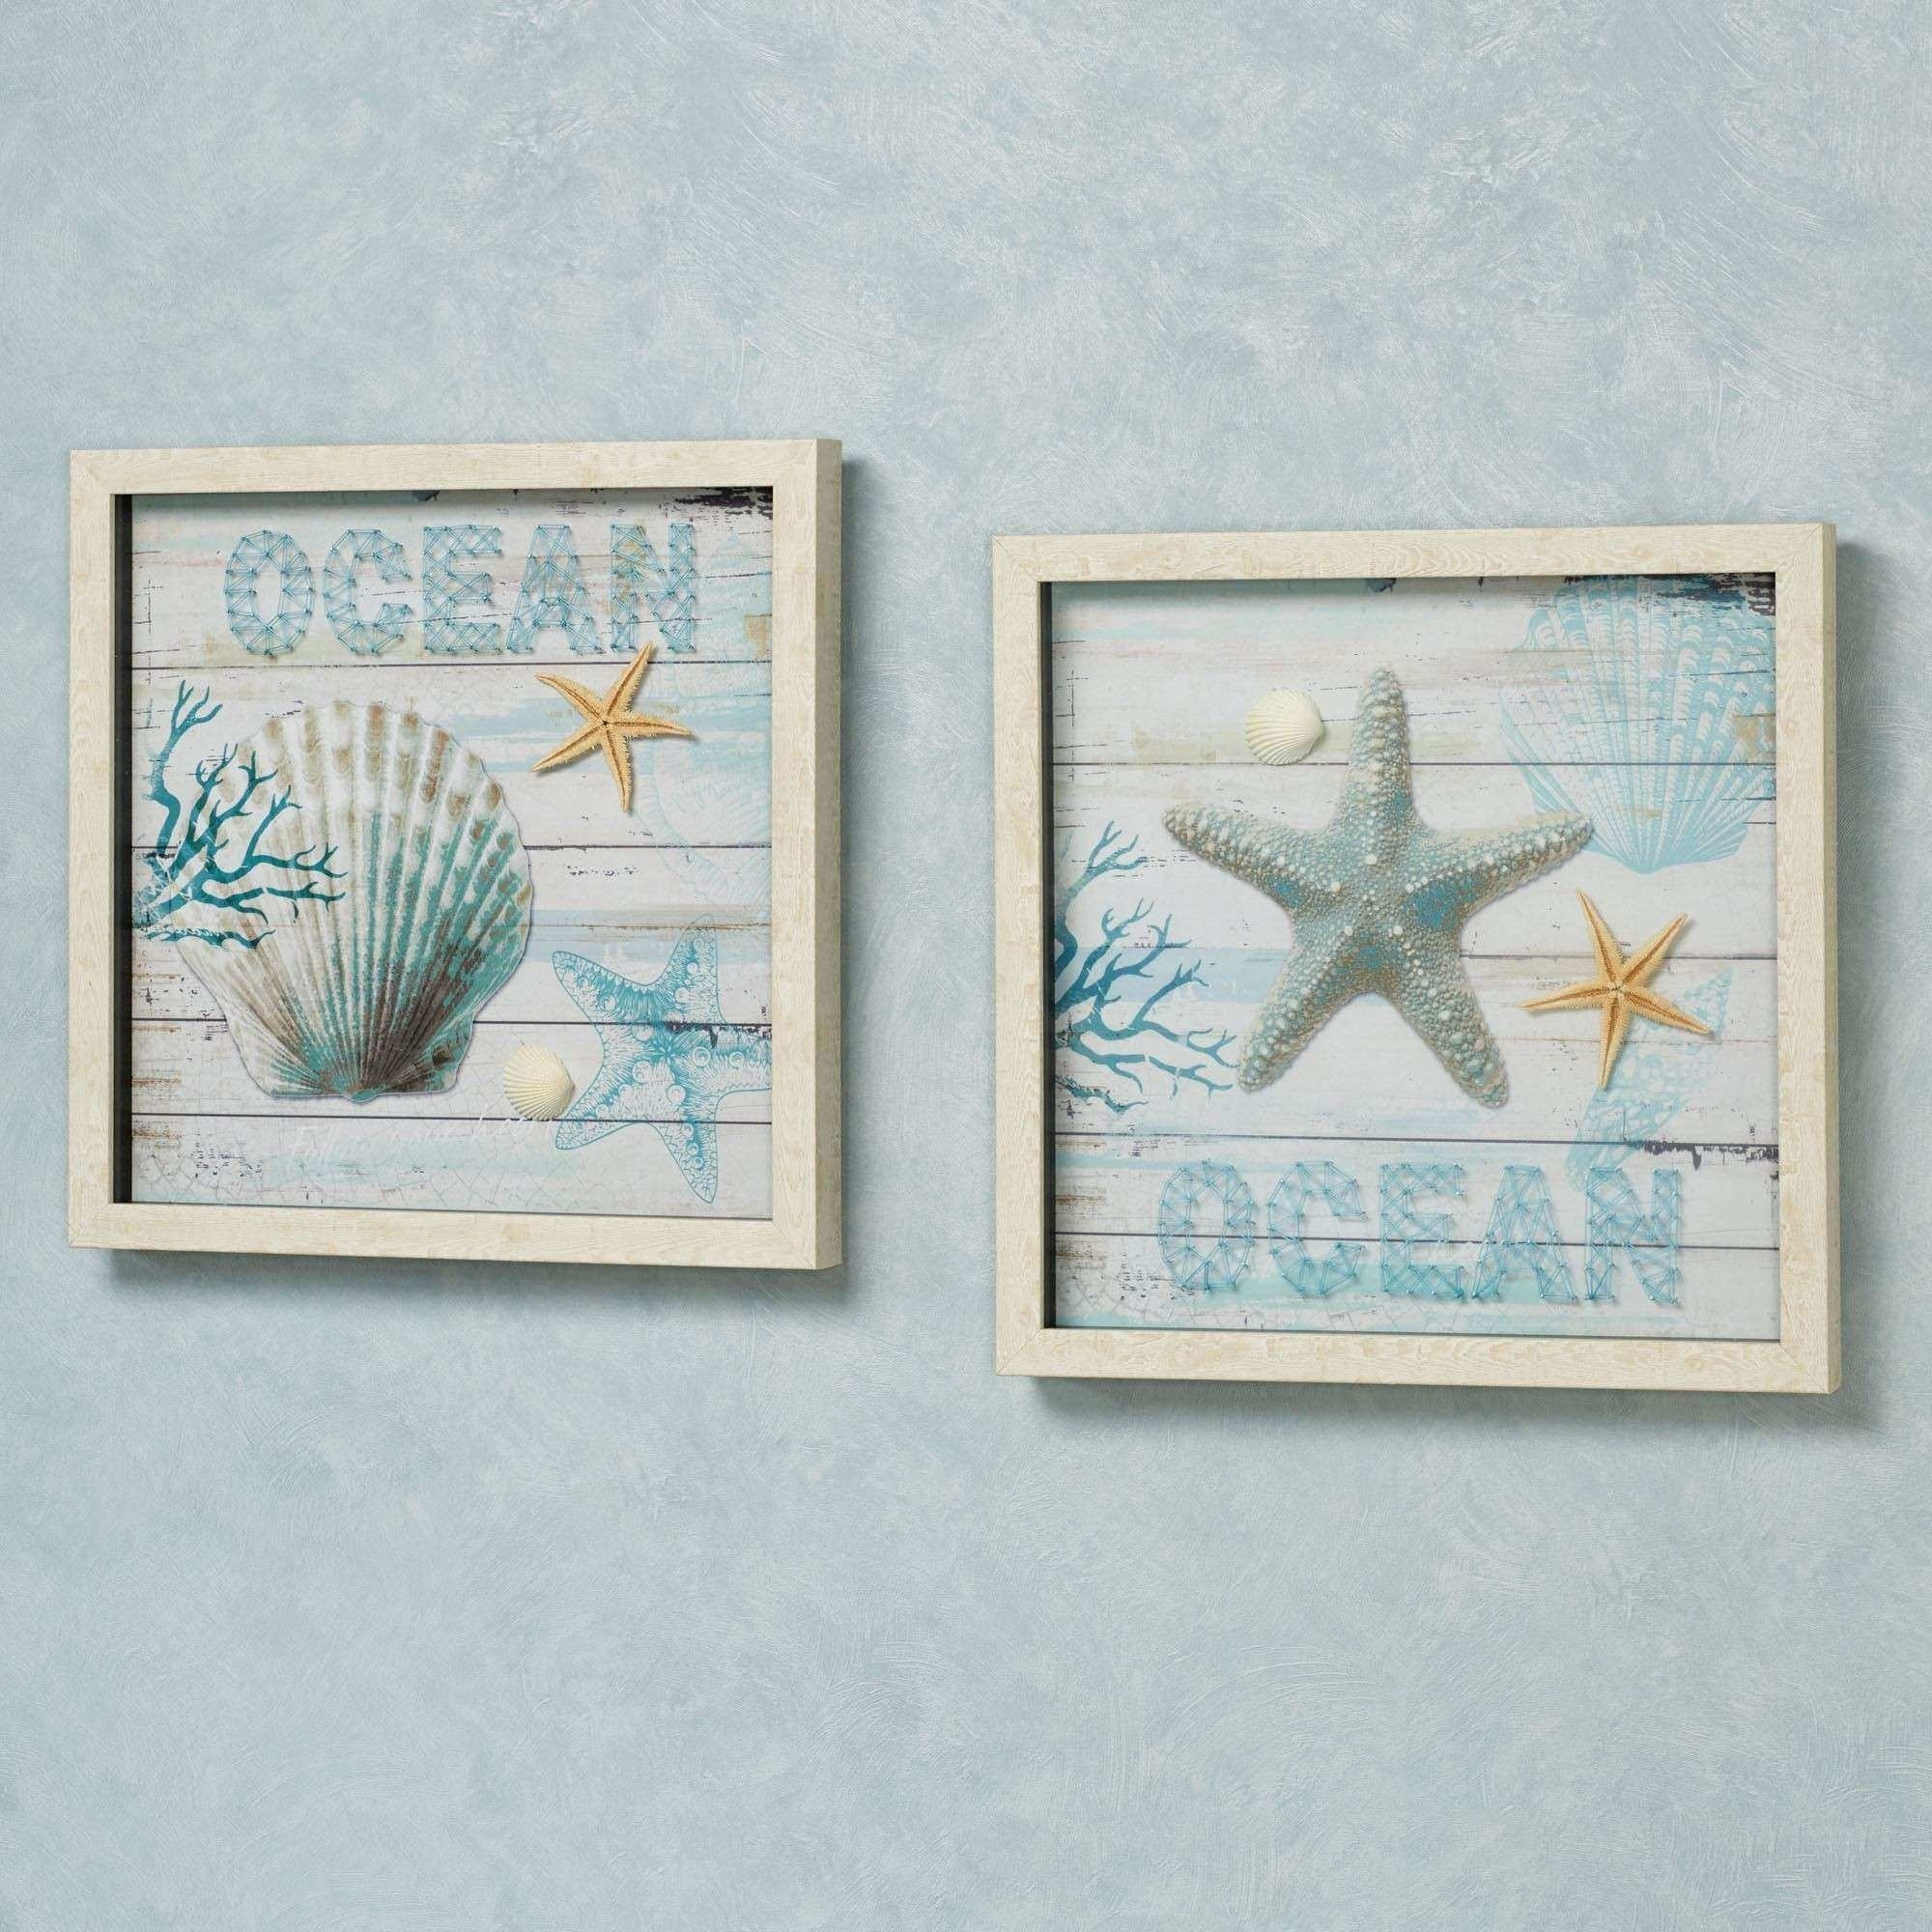 Framed Coastal Wall Art Beautiful Ocean Seashell Framed Wall Art Set intended for Coastal Wall Art (Image 9 of 20)